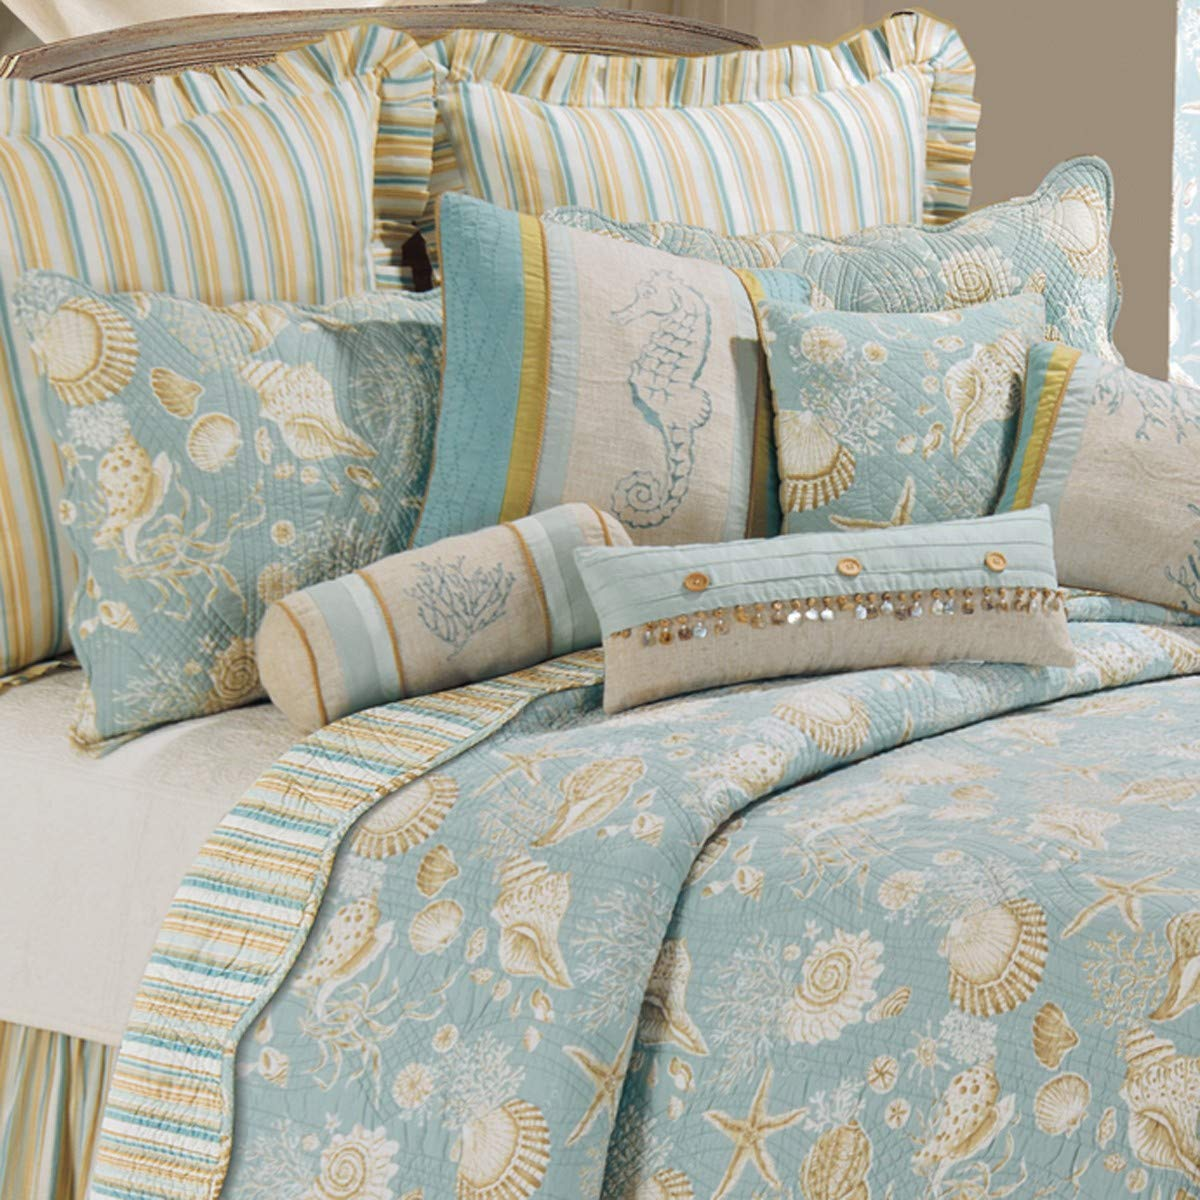 C&F Home Natural Shells Full/Queen Quilt 90x92 - Coastal Theme